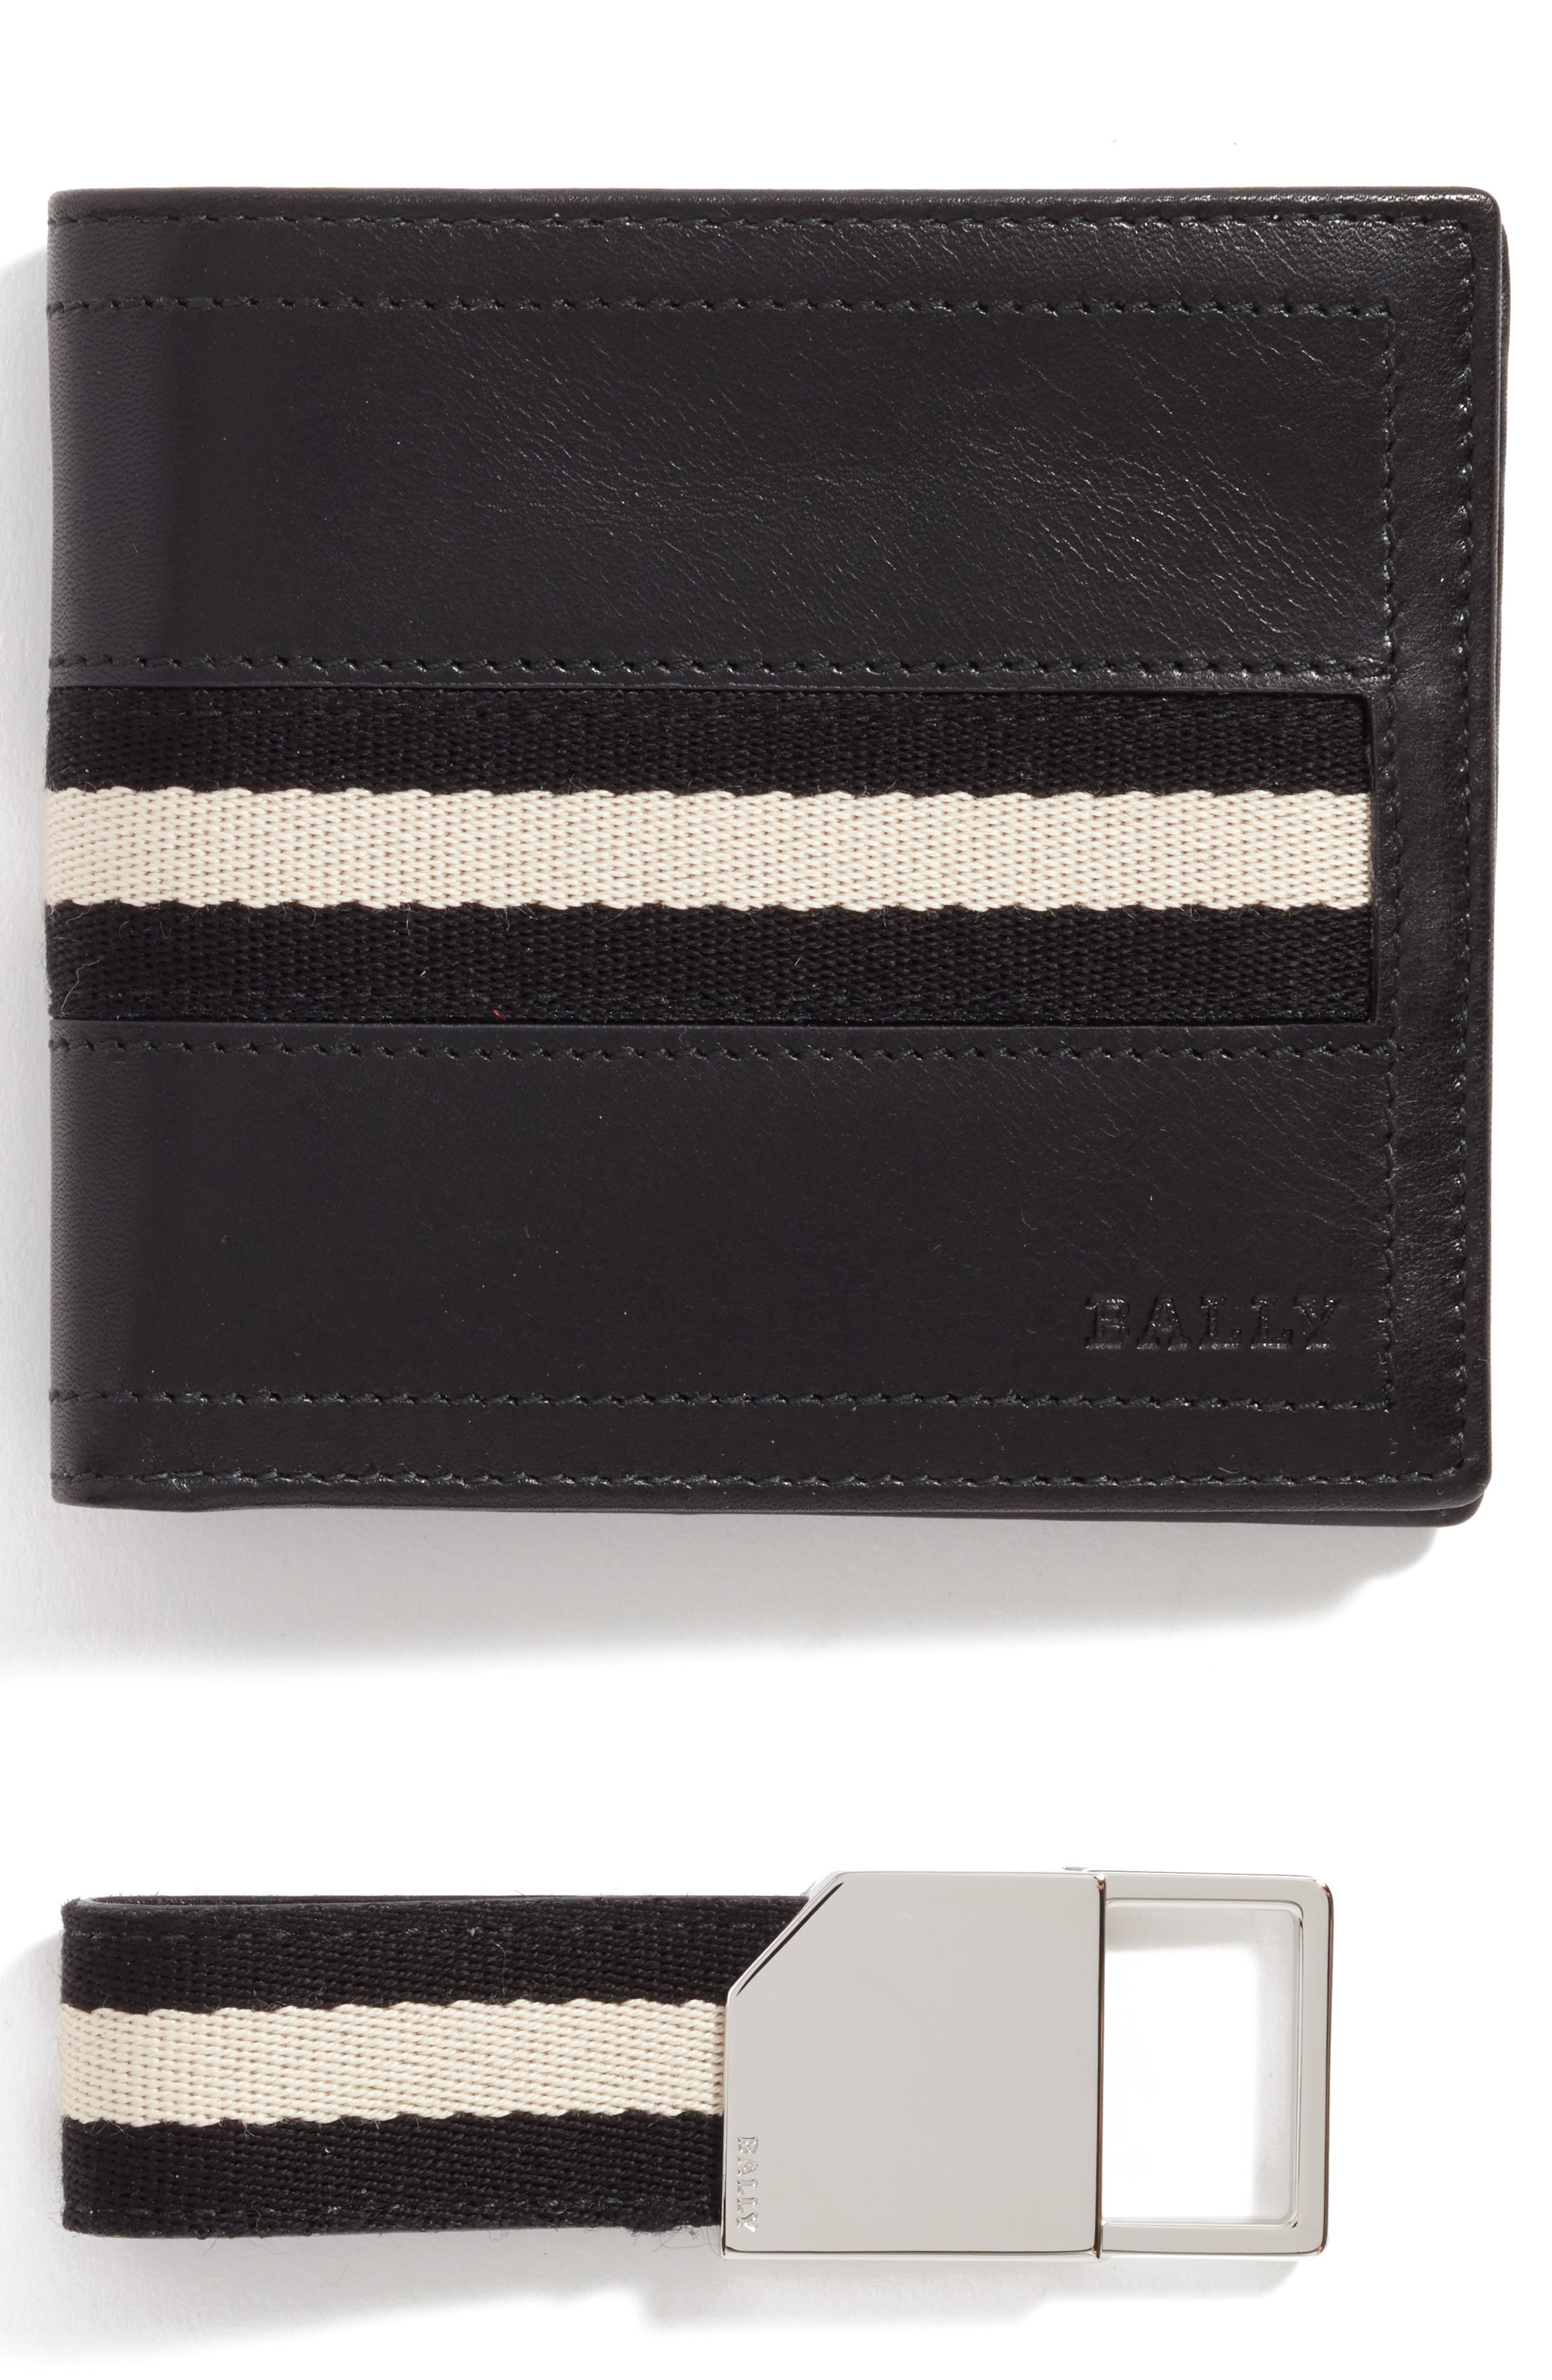 Main Image - Bally Leather Wallet and Belt Gift Set